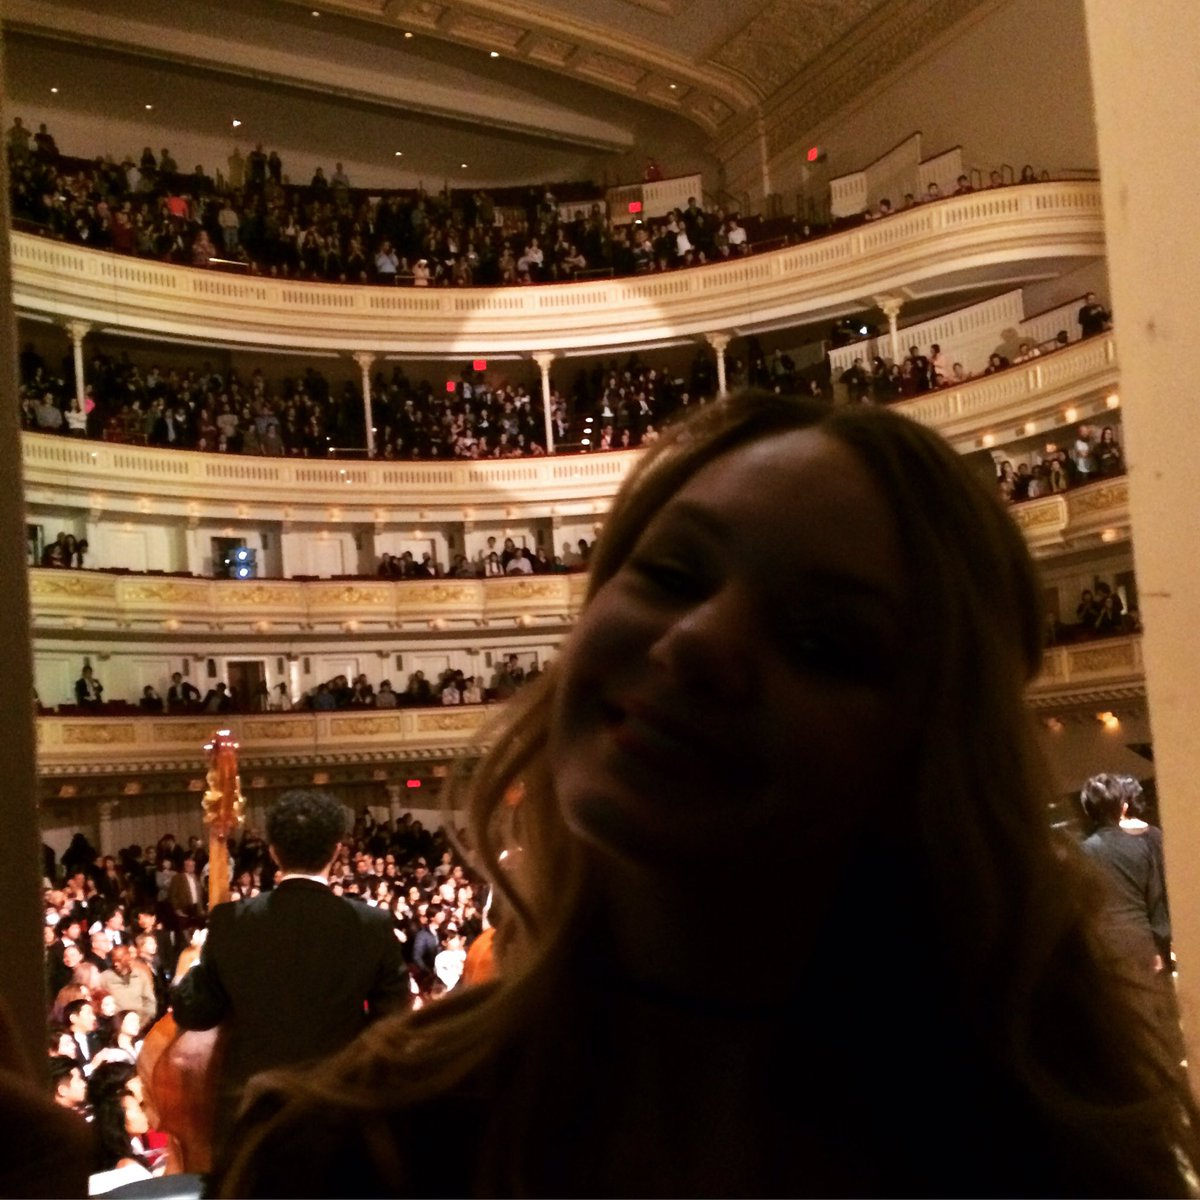 Debut! With @YoshikiOfficial  #yoshikiclassicalspecial #yoshiki  #yoshikiofficial #yoshikiclassical #xjapan #wearex #carnegiehall #nyc<br>http://pic.twitter.com/zp9fT1Alsa